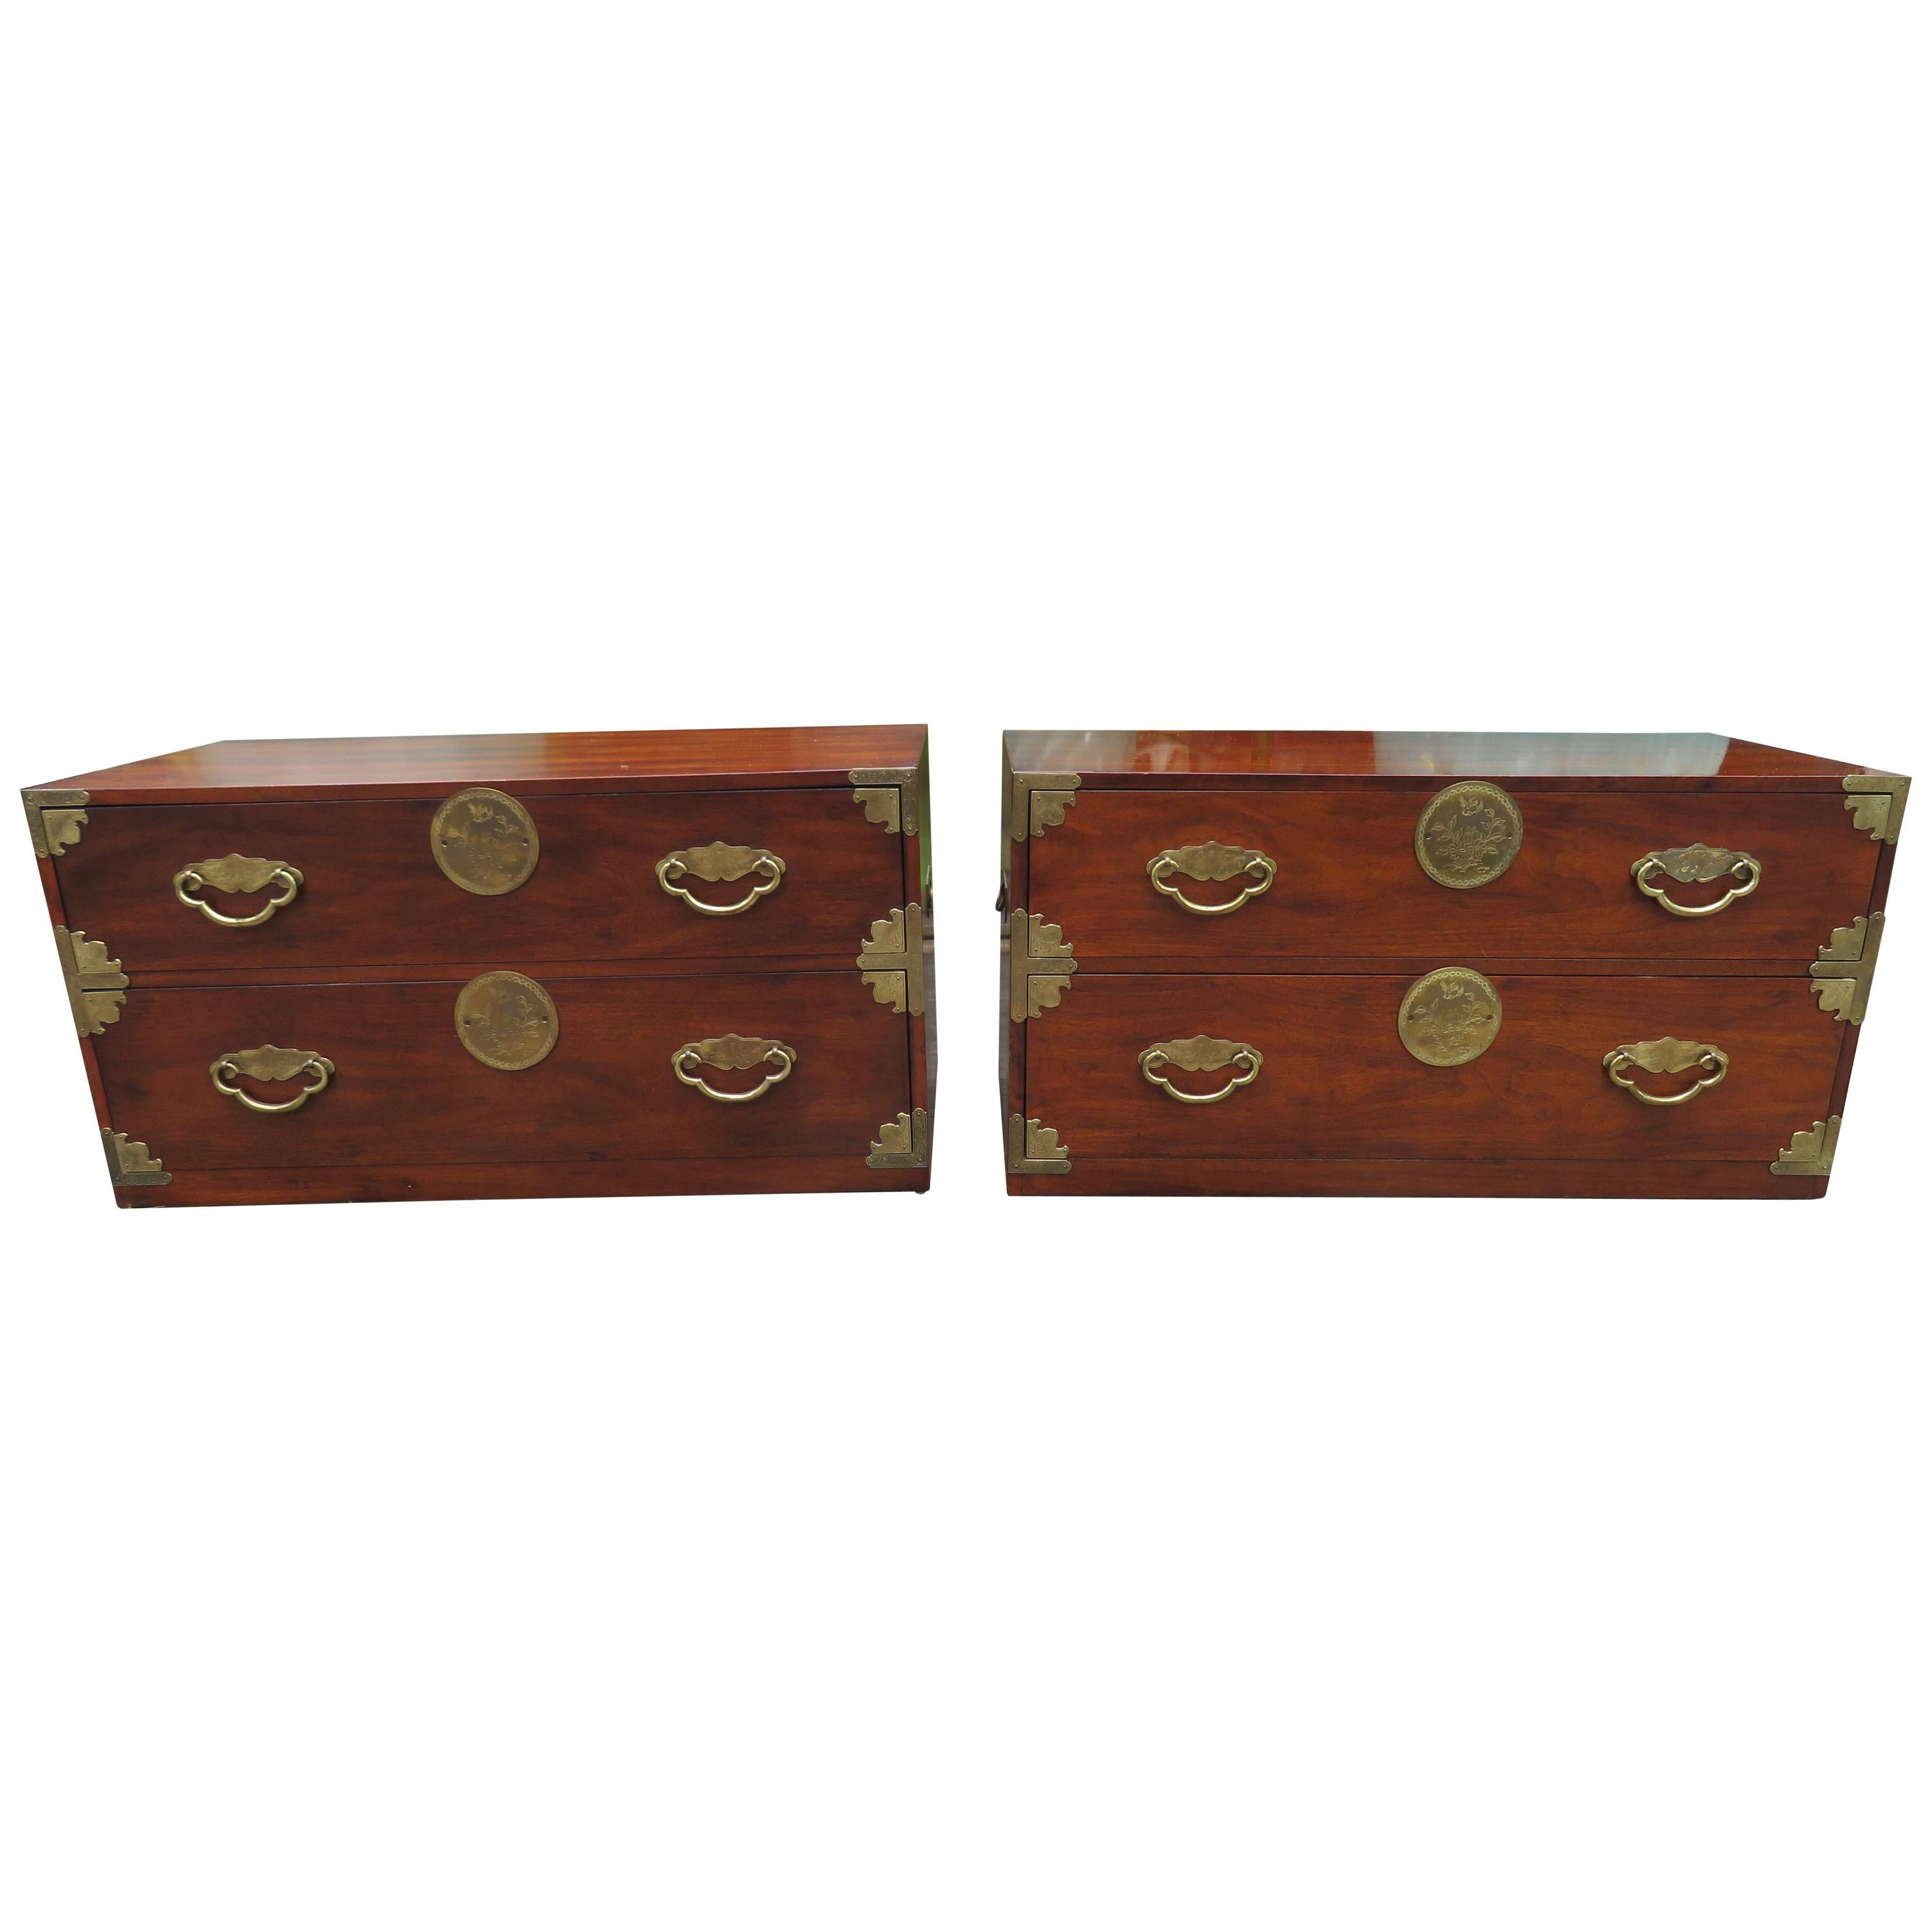 Handsome Pair of Henredon Asian Campaign Bachelors Chest, Mid-Century Modern